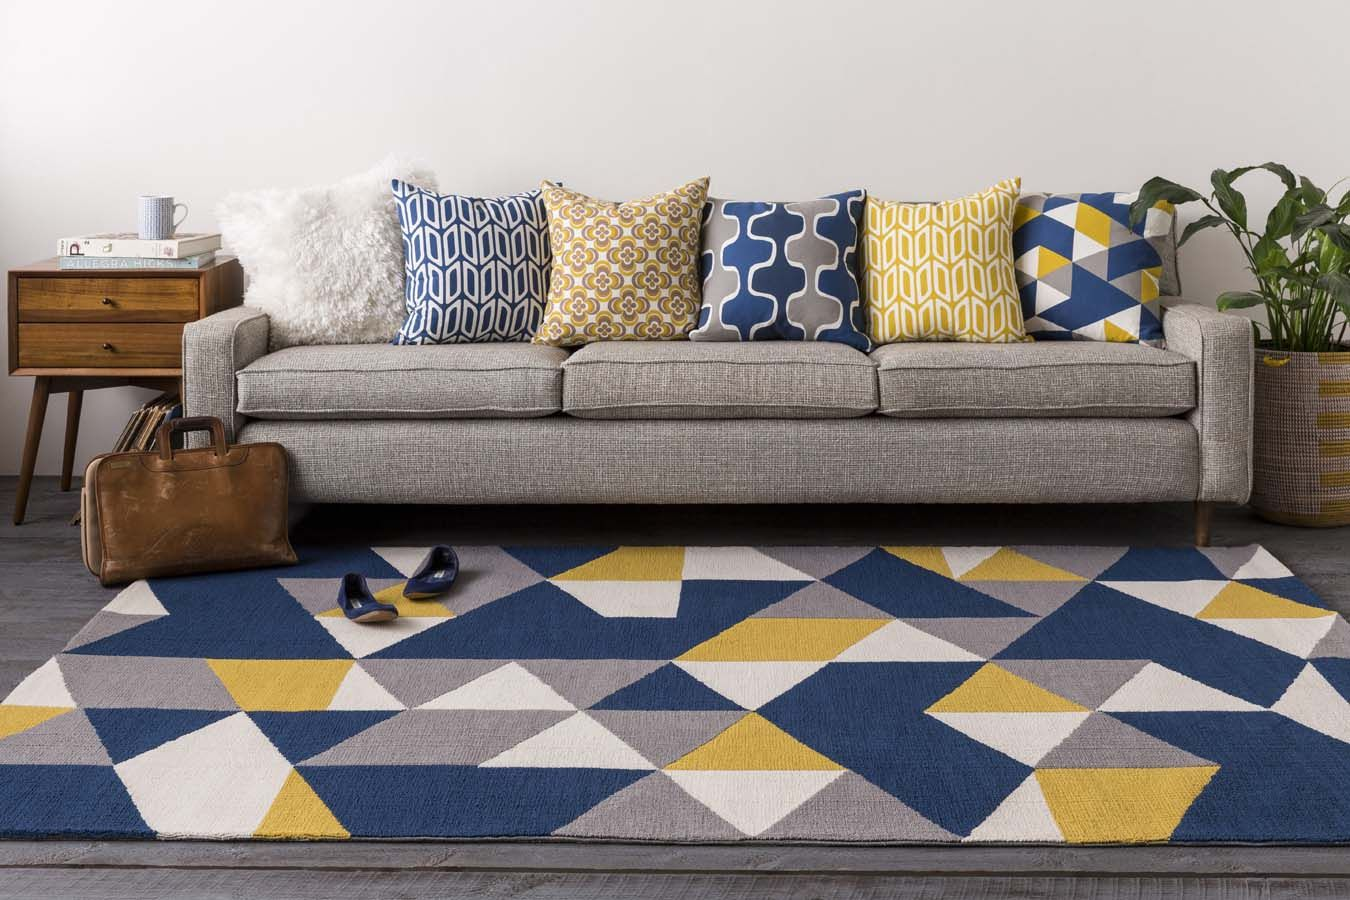 Handmade Twined Rug Blue Yellow And White Woven Cotton Mat